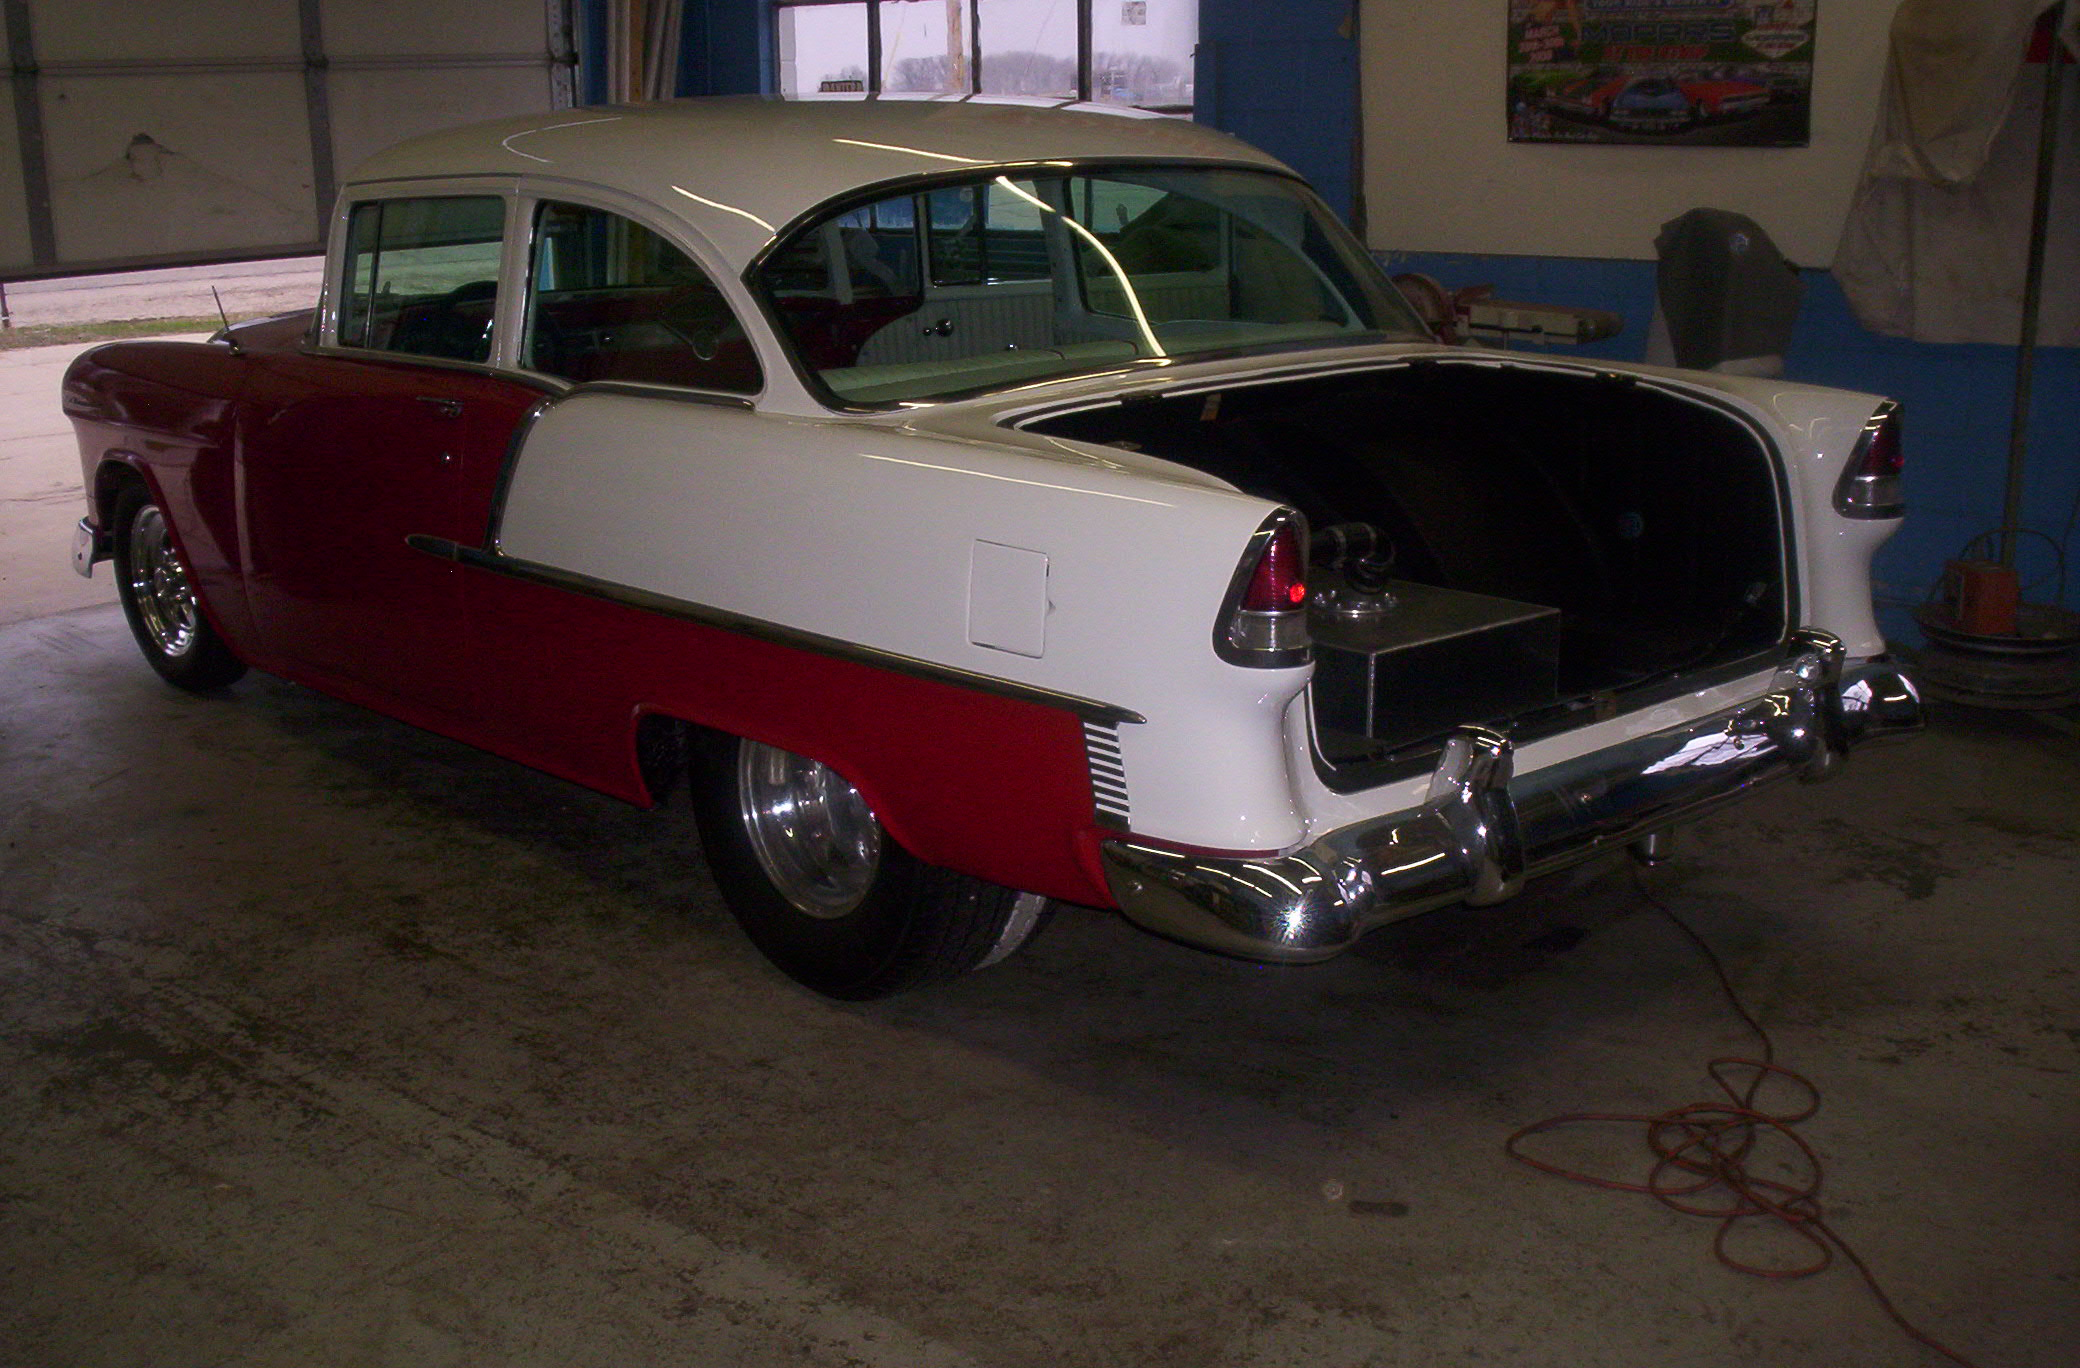 New Fast Cars Under 15k >> 55 Chevy Pro Street Cars For Sale - Best Car Janda